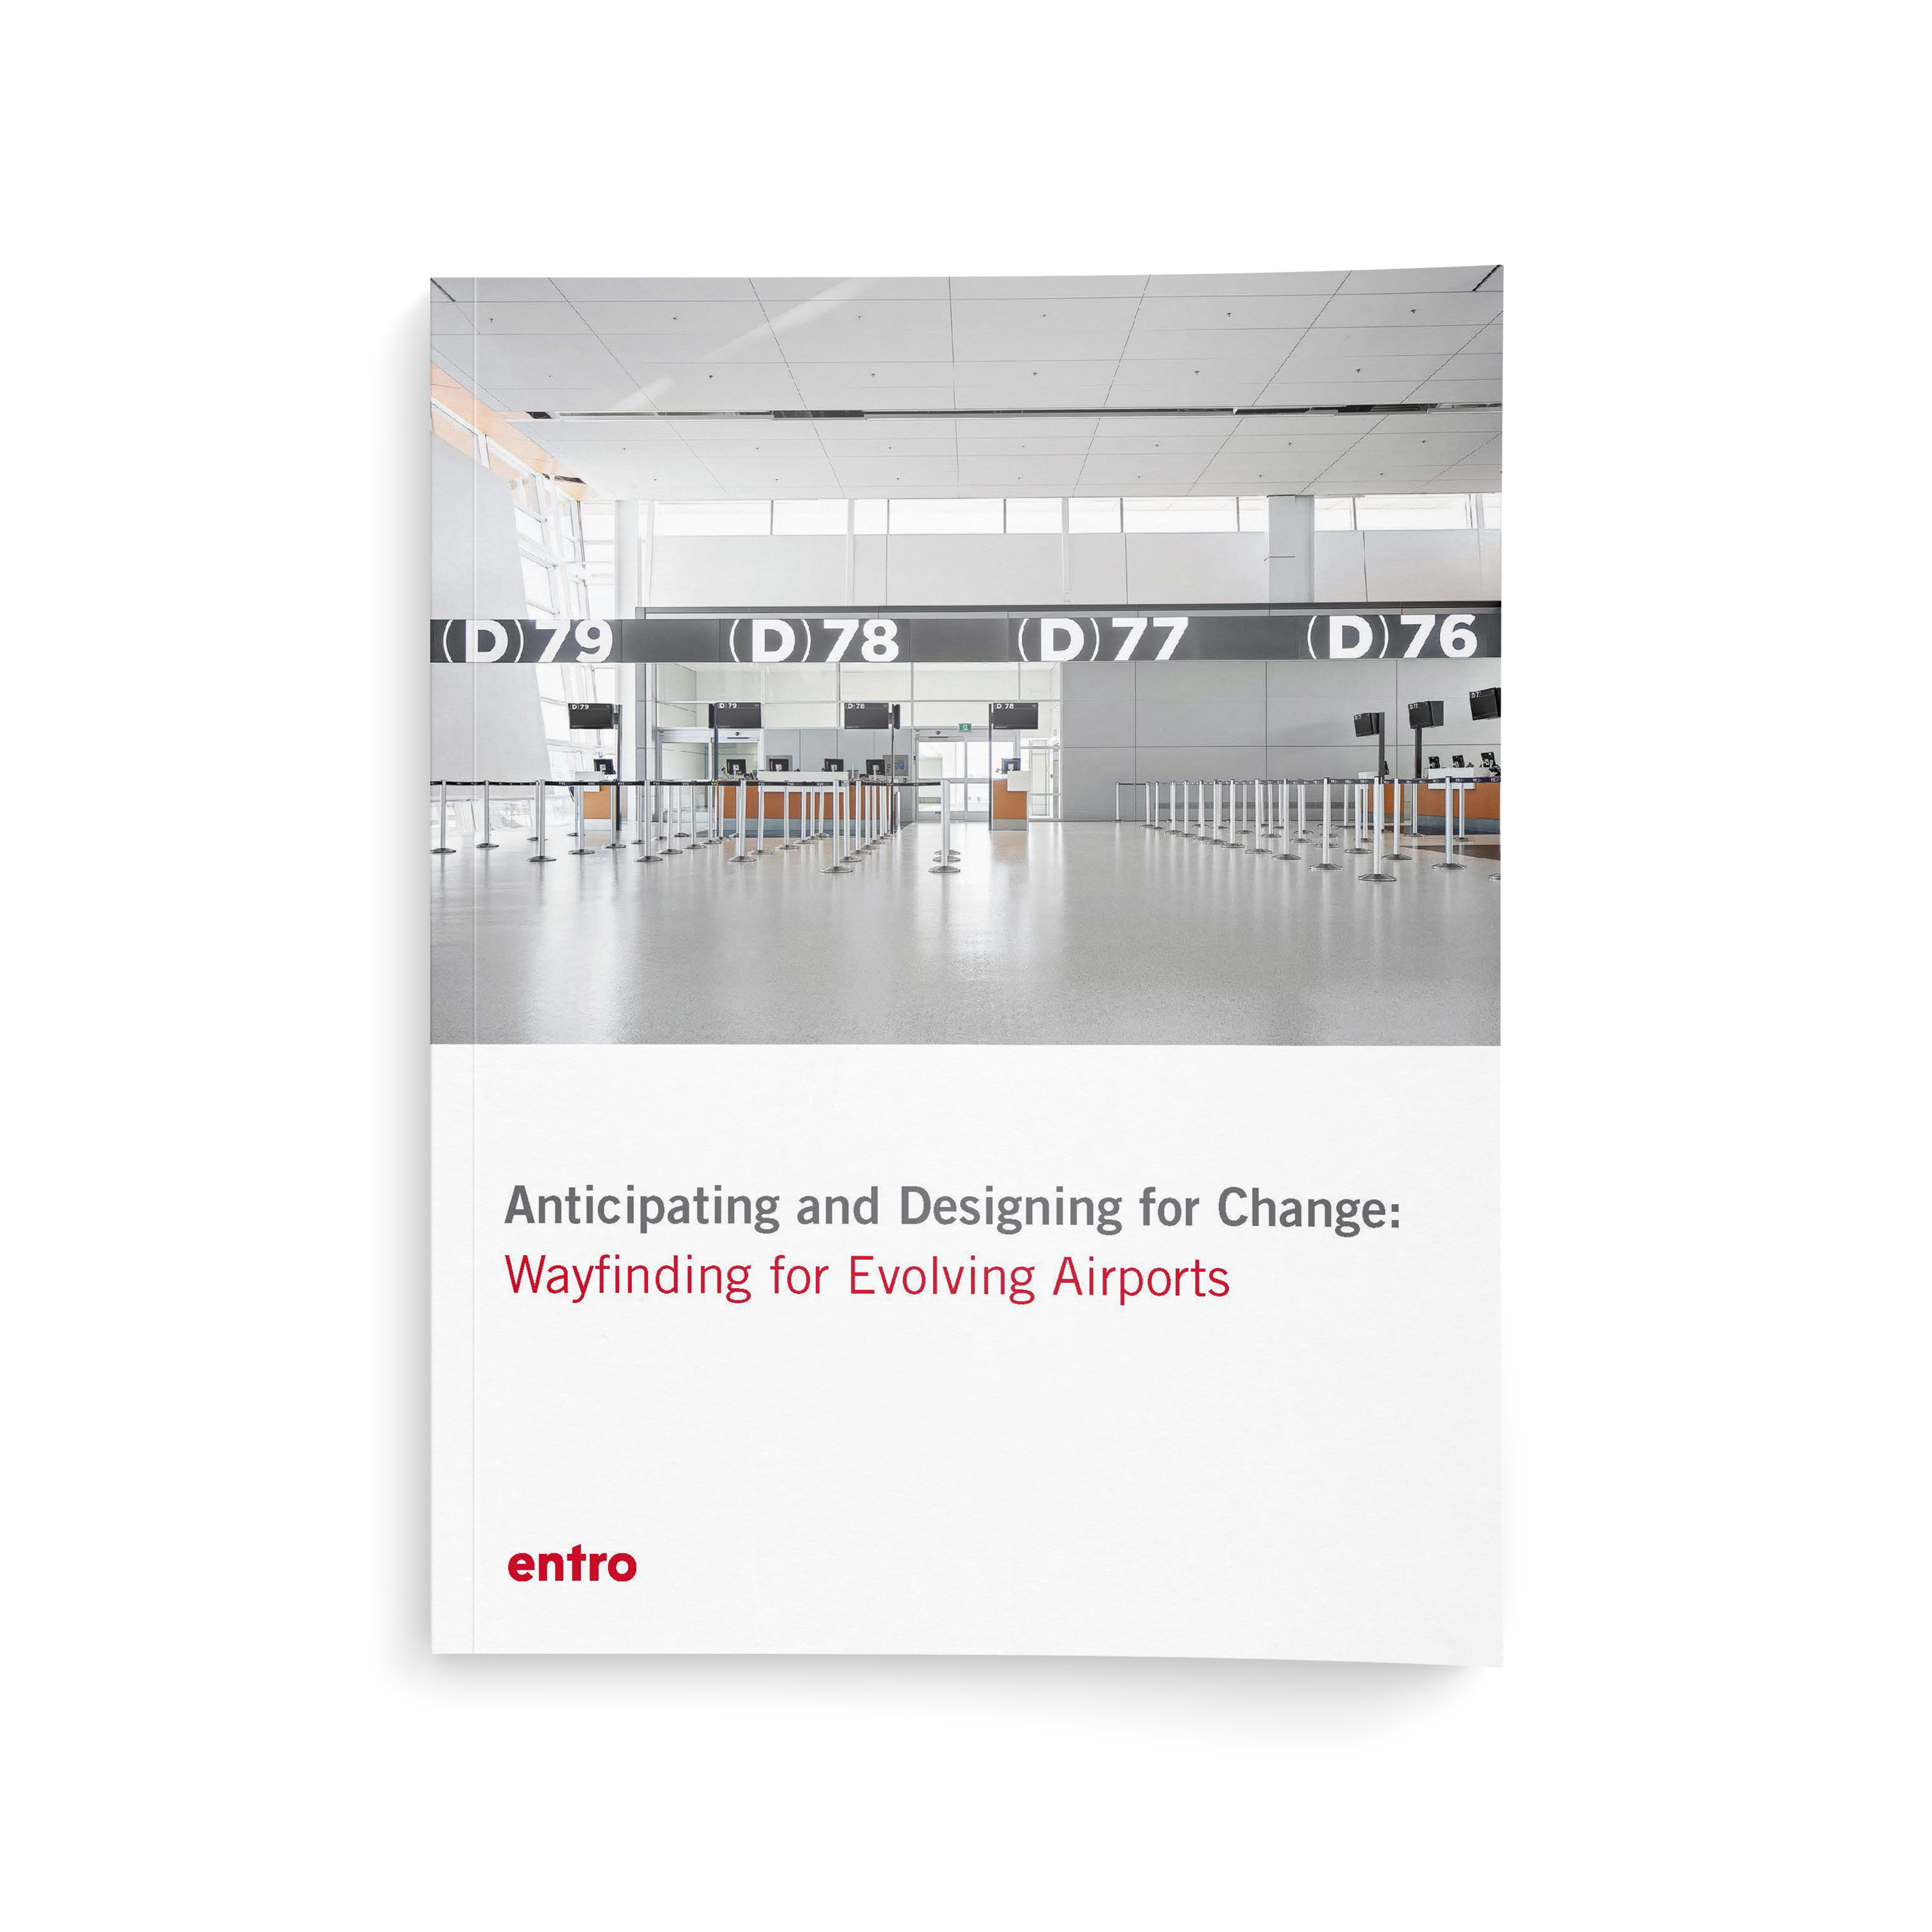 Anticipating and Designing for Change – Wayfinding for Evolving Airports